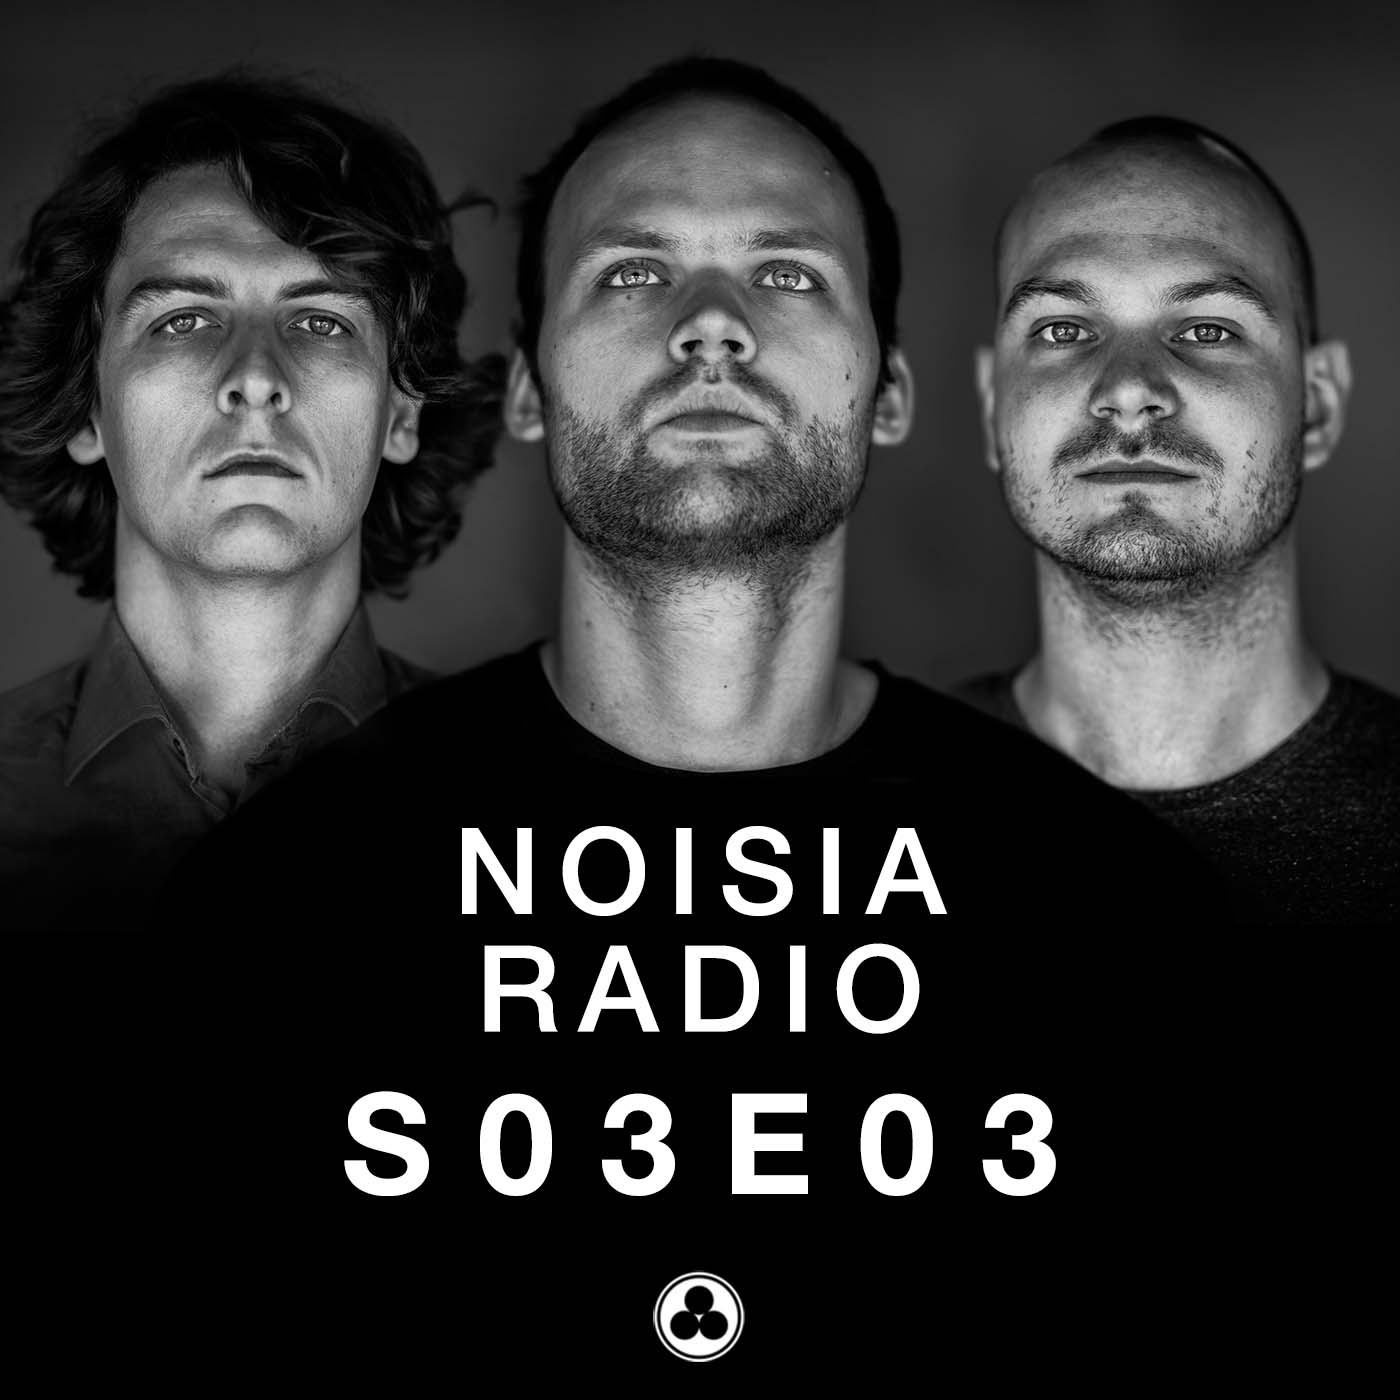 Noisia Radio S03E03